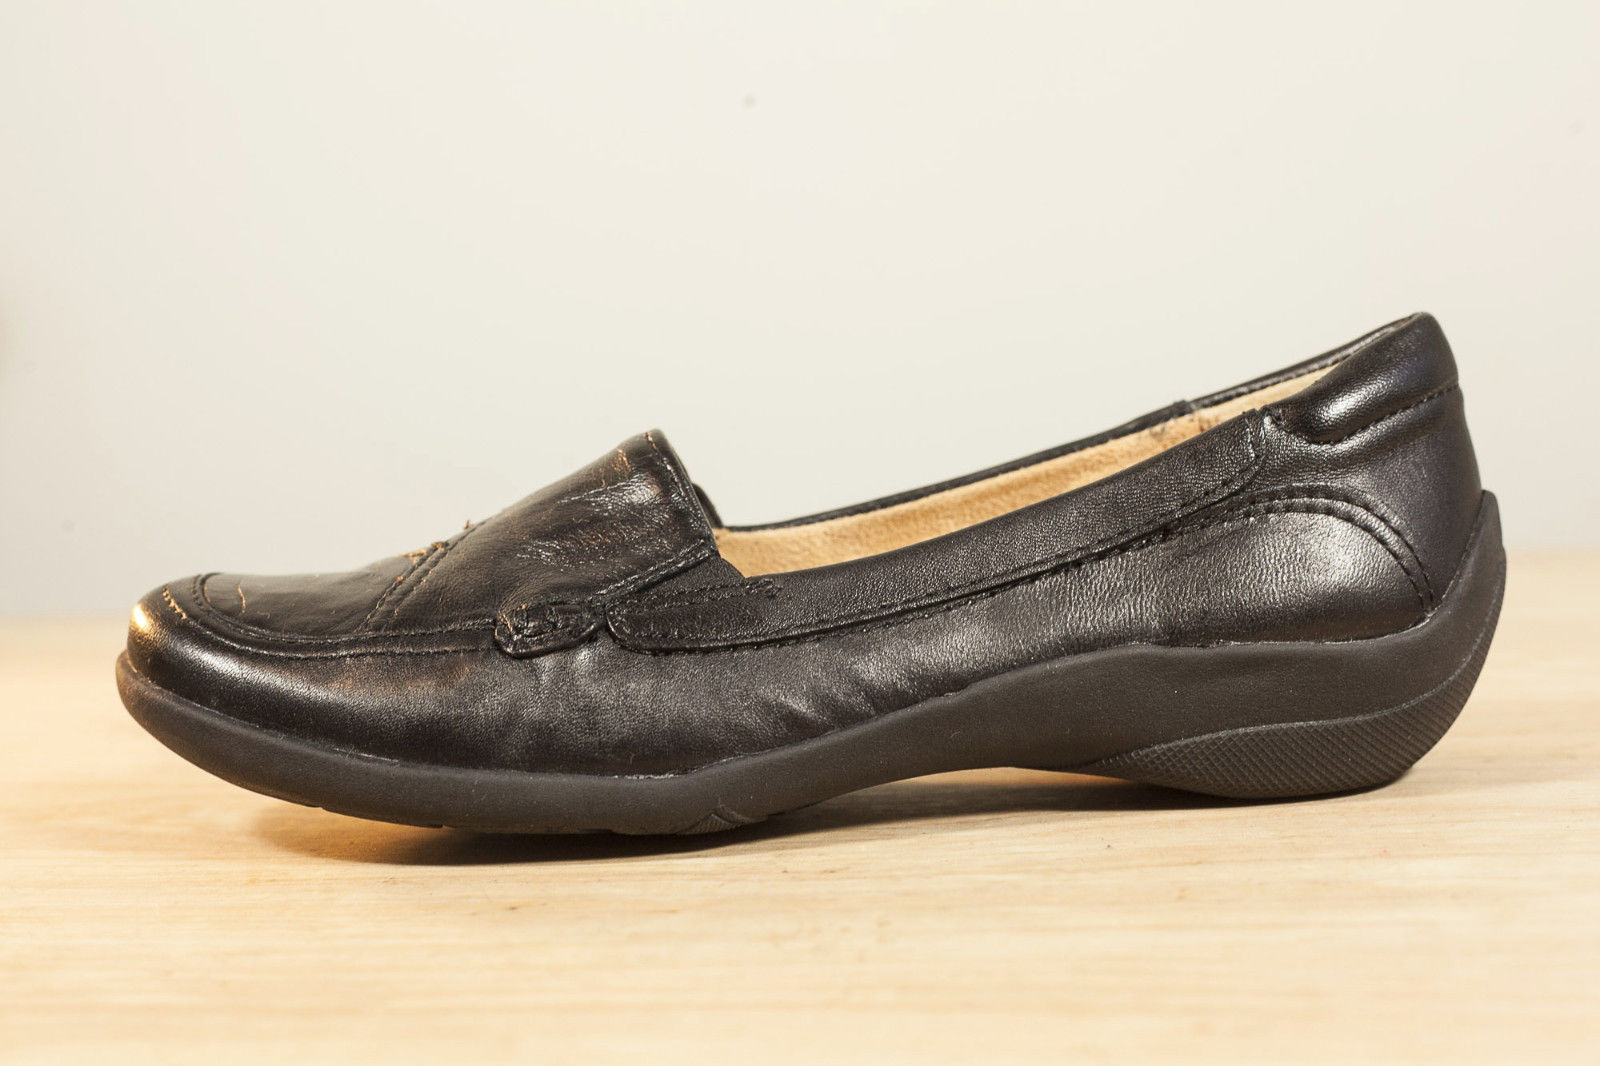 Naturalizer 5.5 Black Leather Loafers Flats Women's Shoes